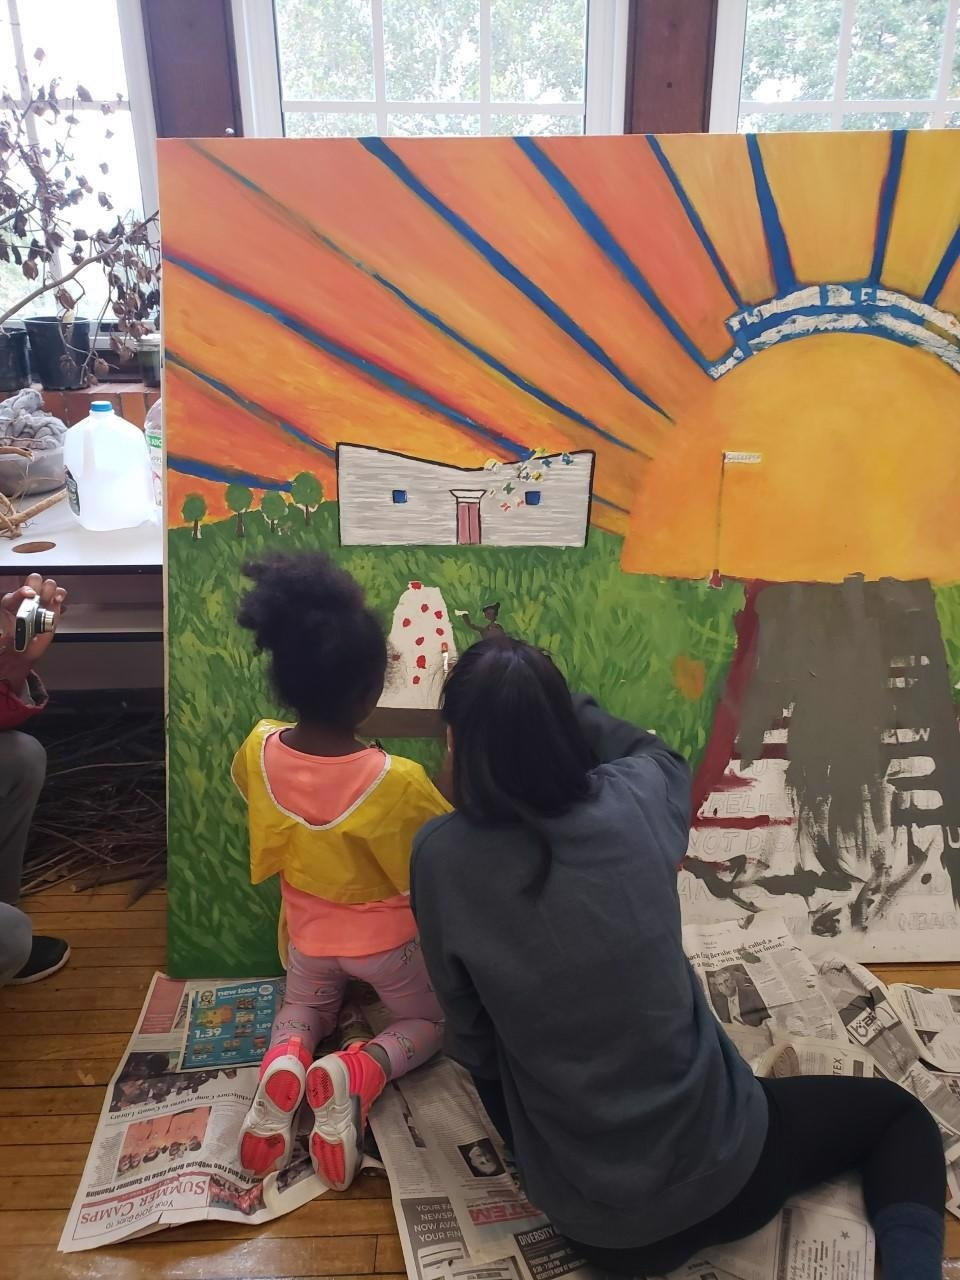 Student paints mural indoors with a child.